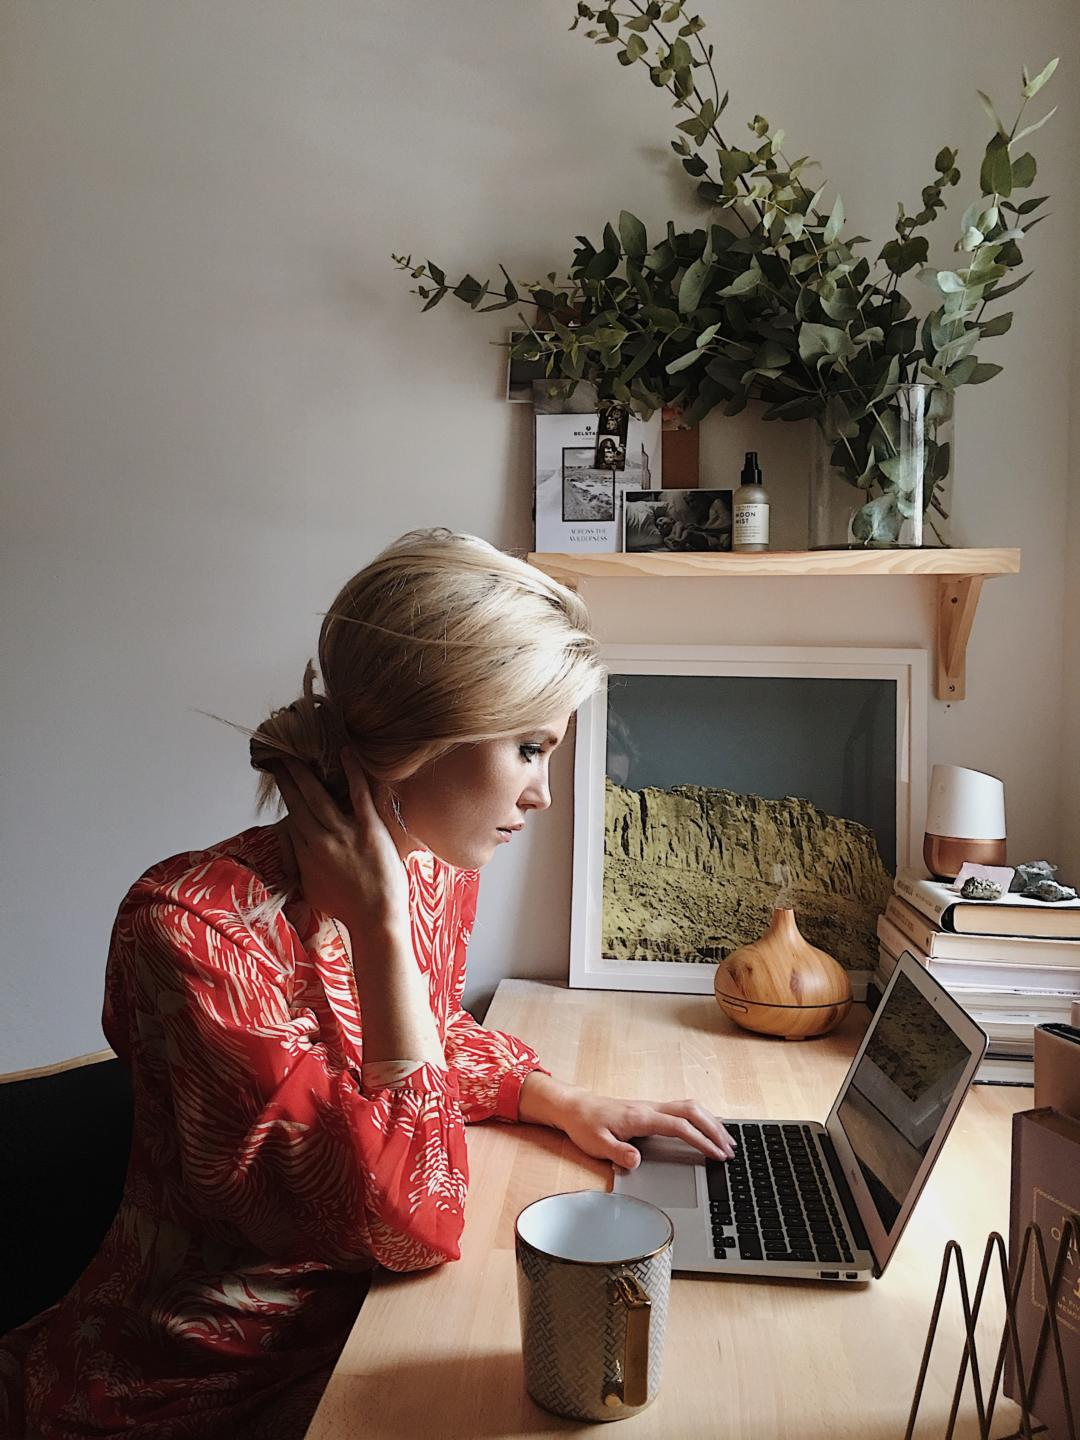 Home Office Club Eimear Varian Barry Ee Community Blog Creating Your Home Office